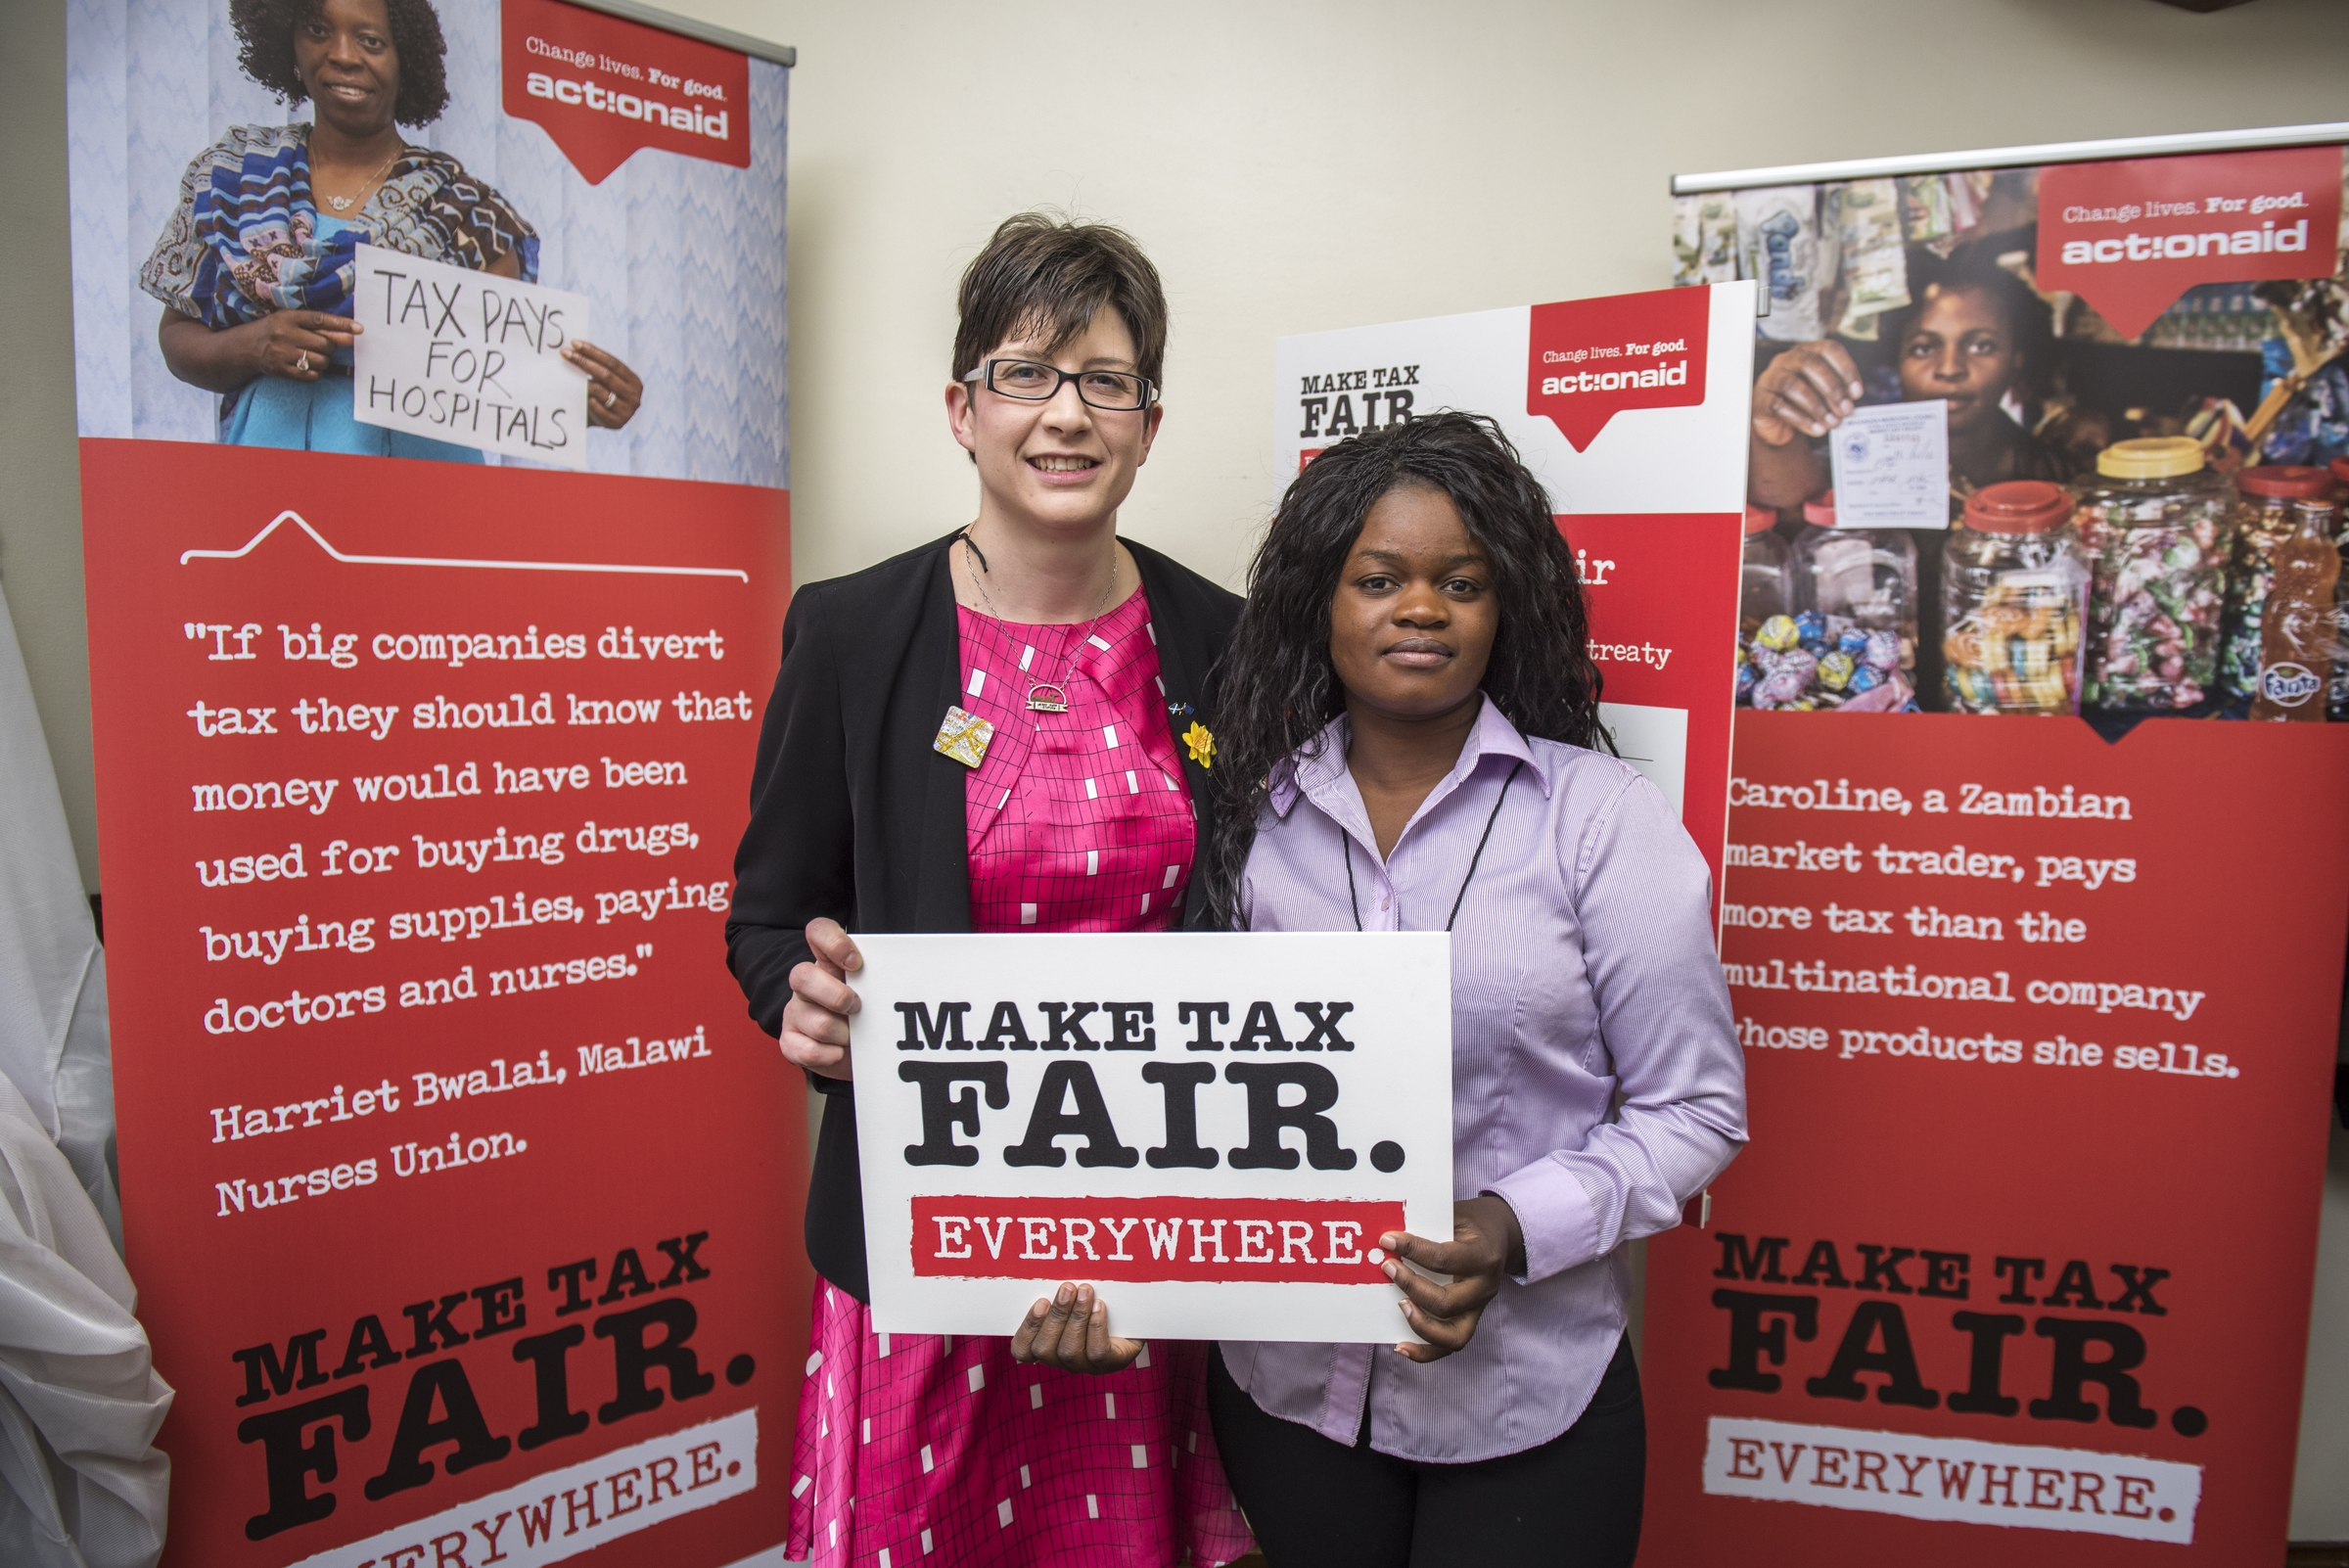 Alison Thewliss MP joins ActionAid to call on the UK Government to tackle tax avoidance